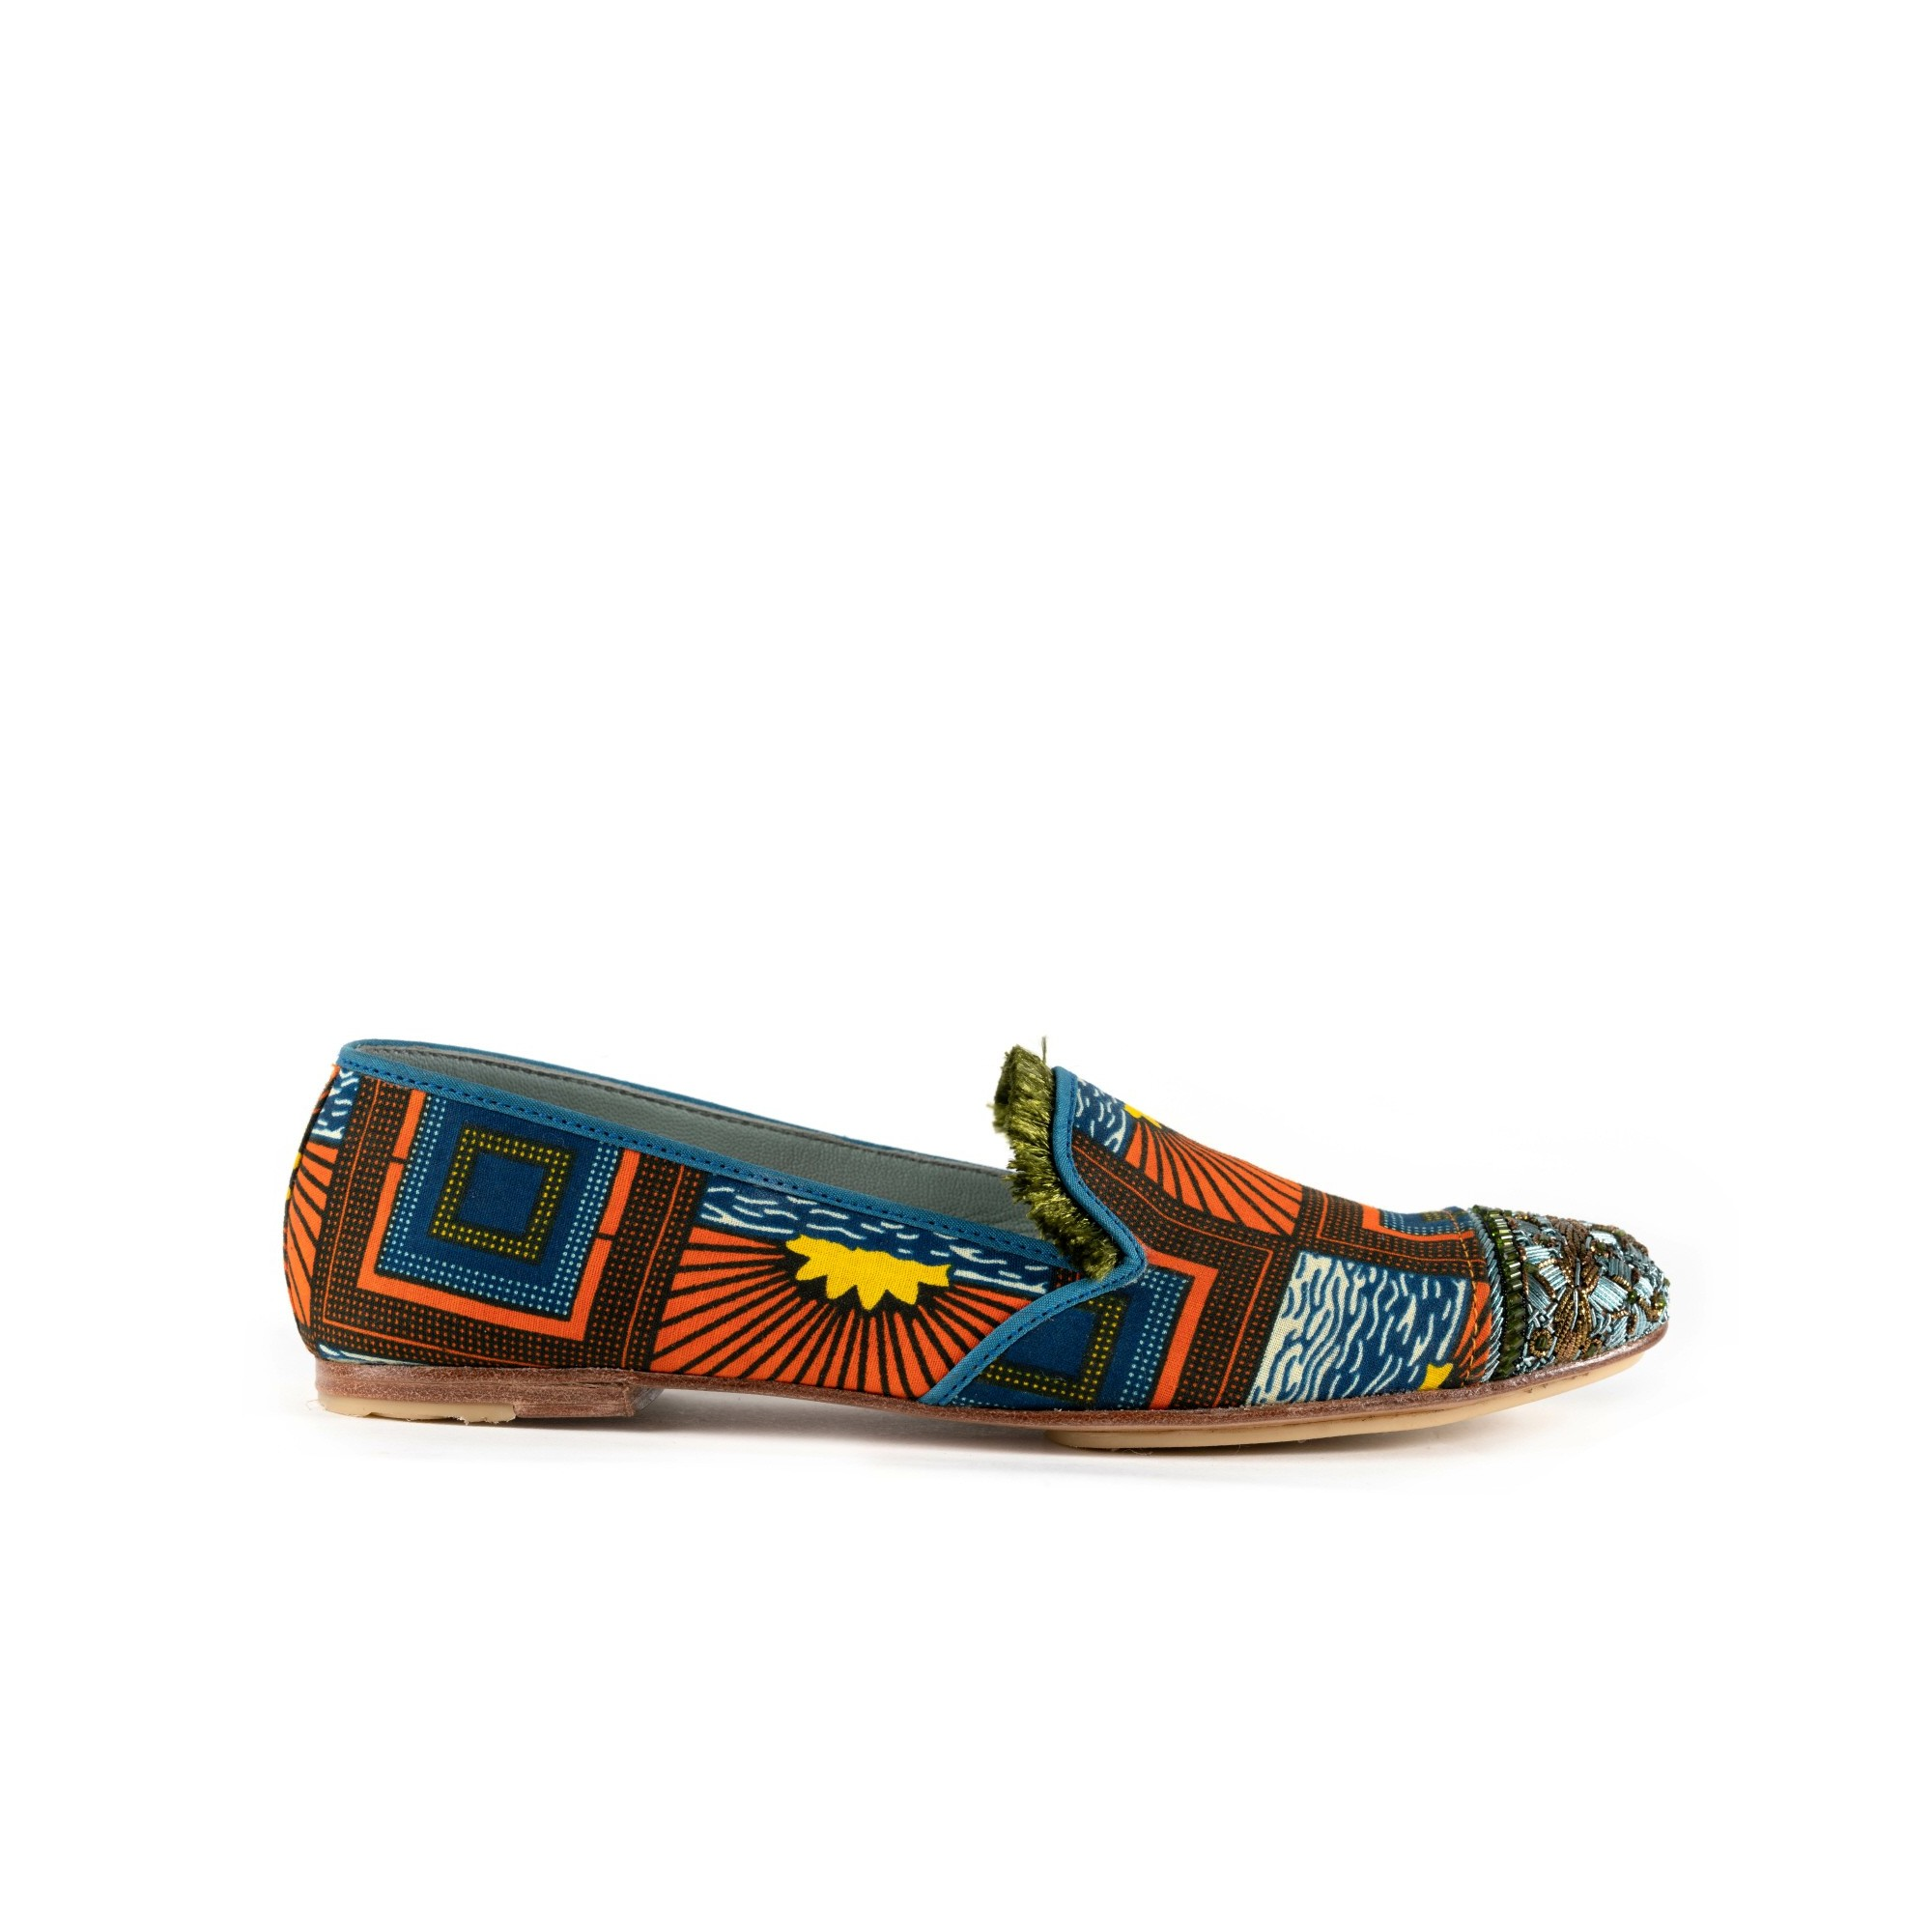 BIZI MOCCASIN+FRINGE - sunset/jungle